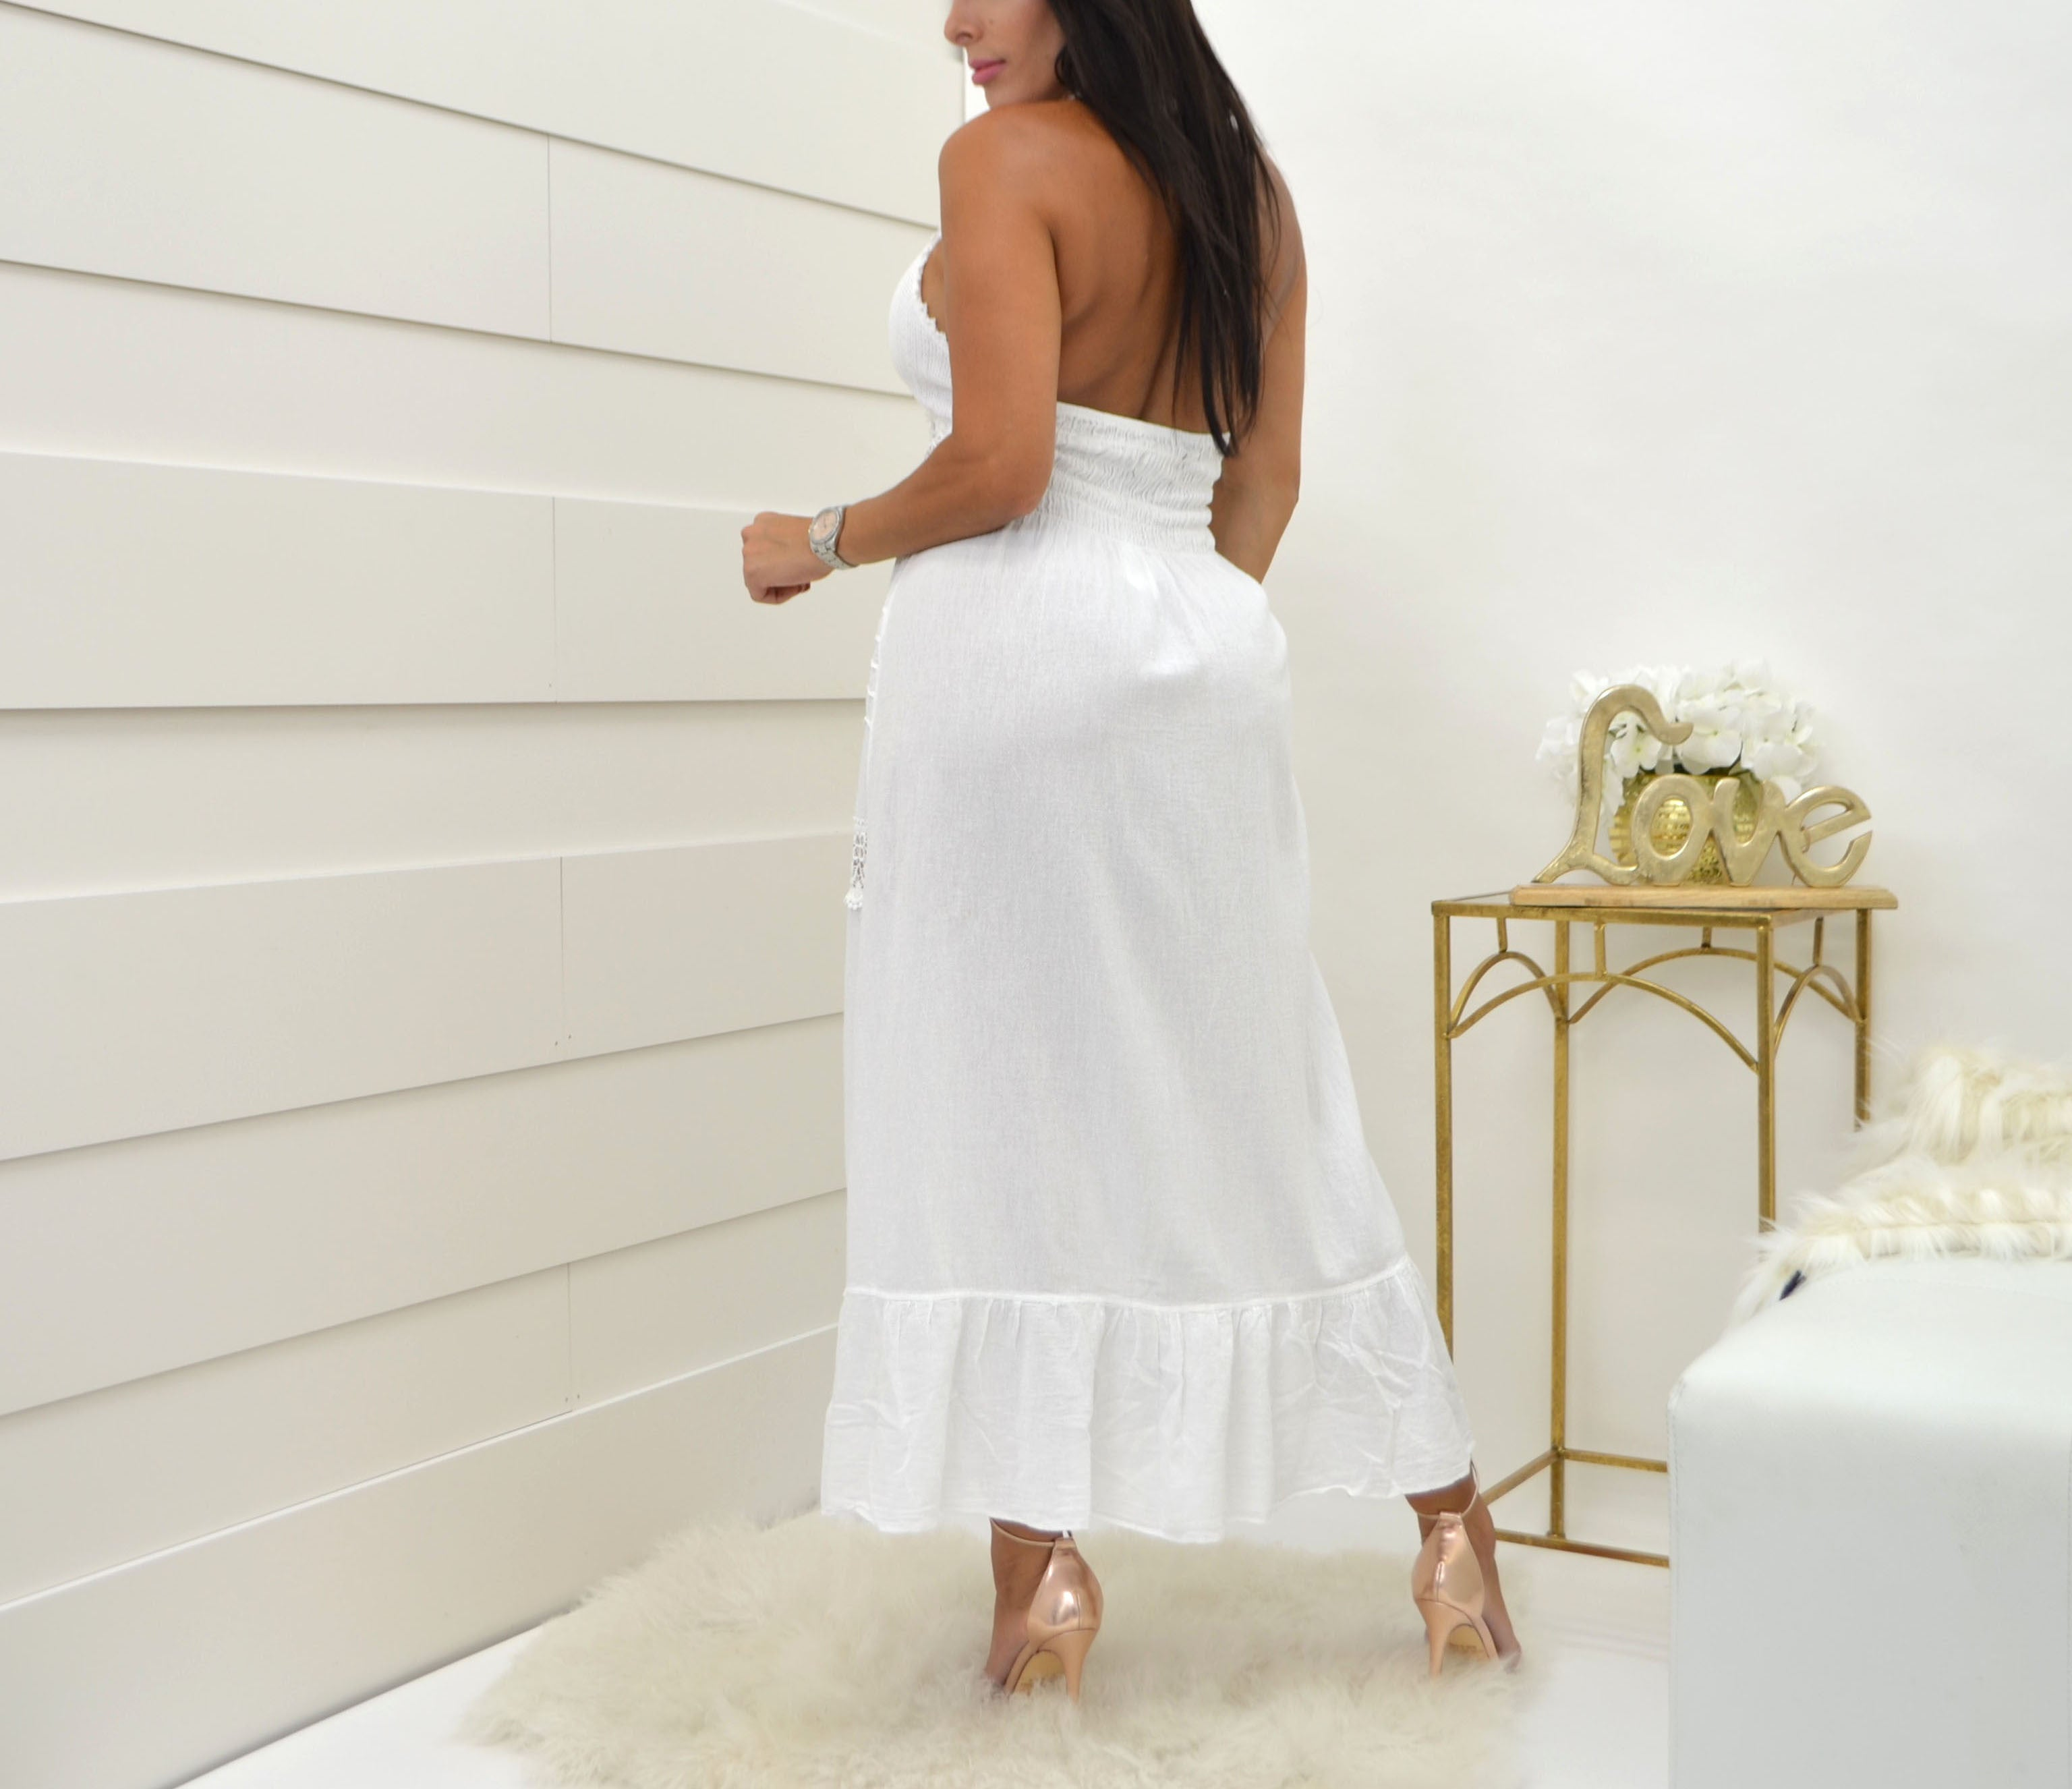 Sea Spice White Dress NW1068 - Bacana Clothing + Shoes